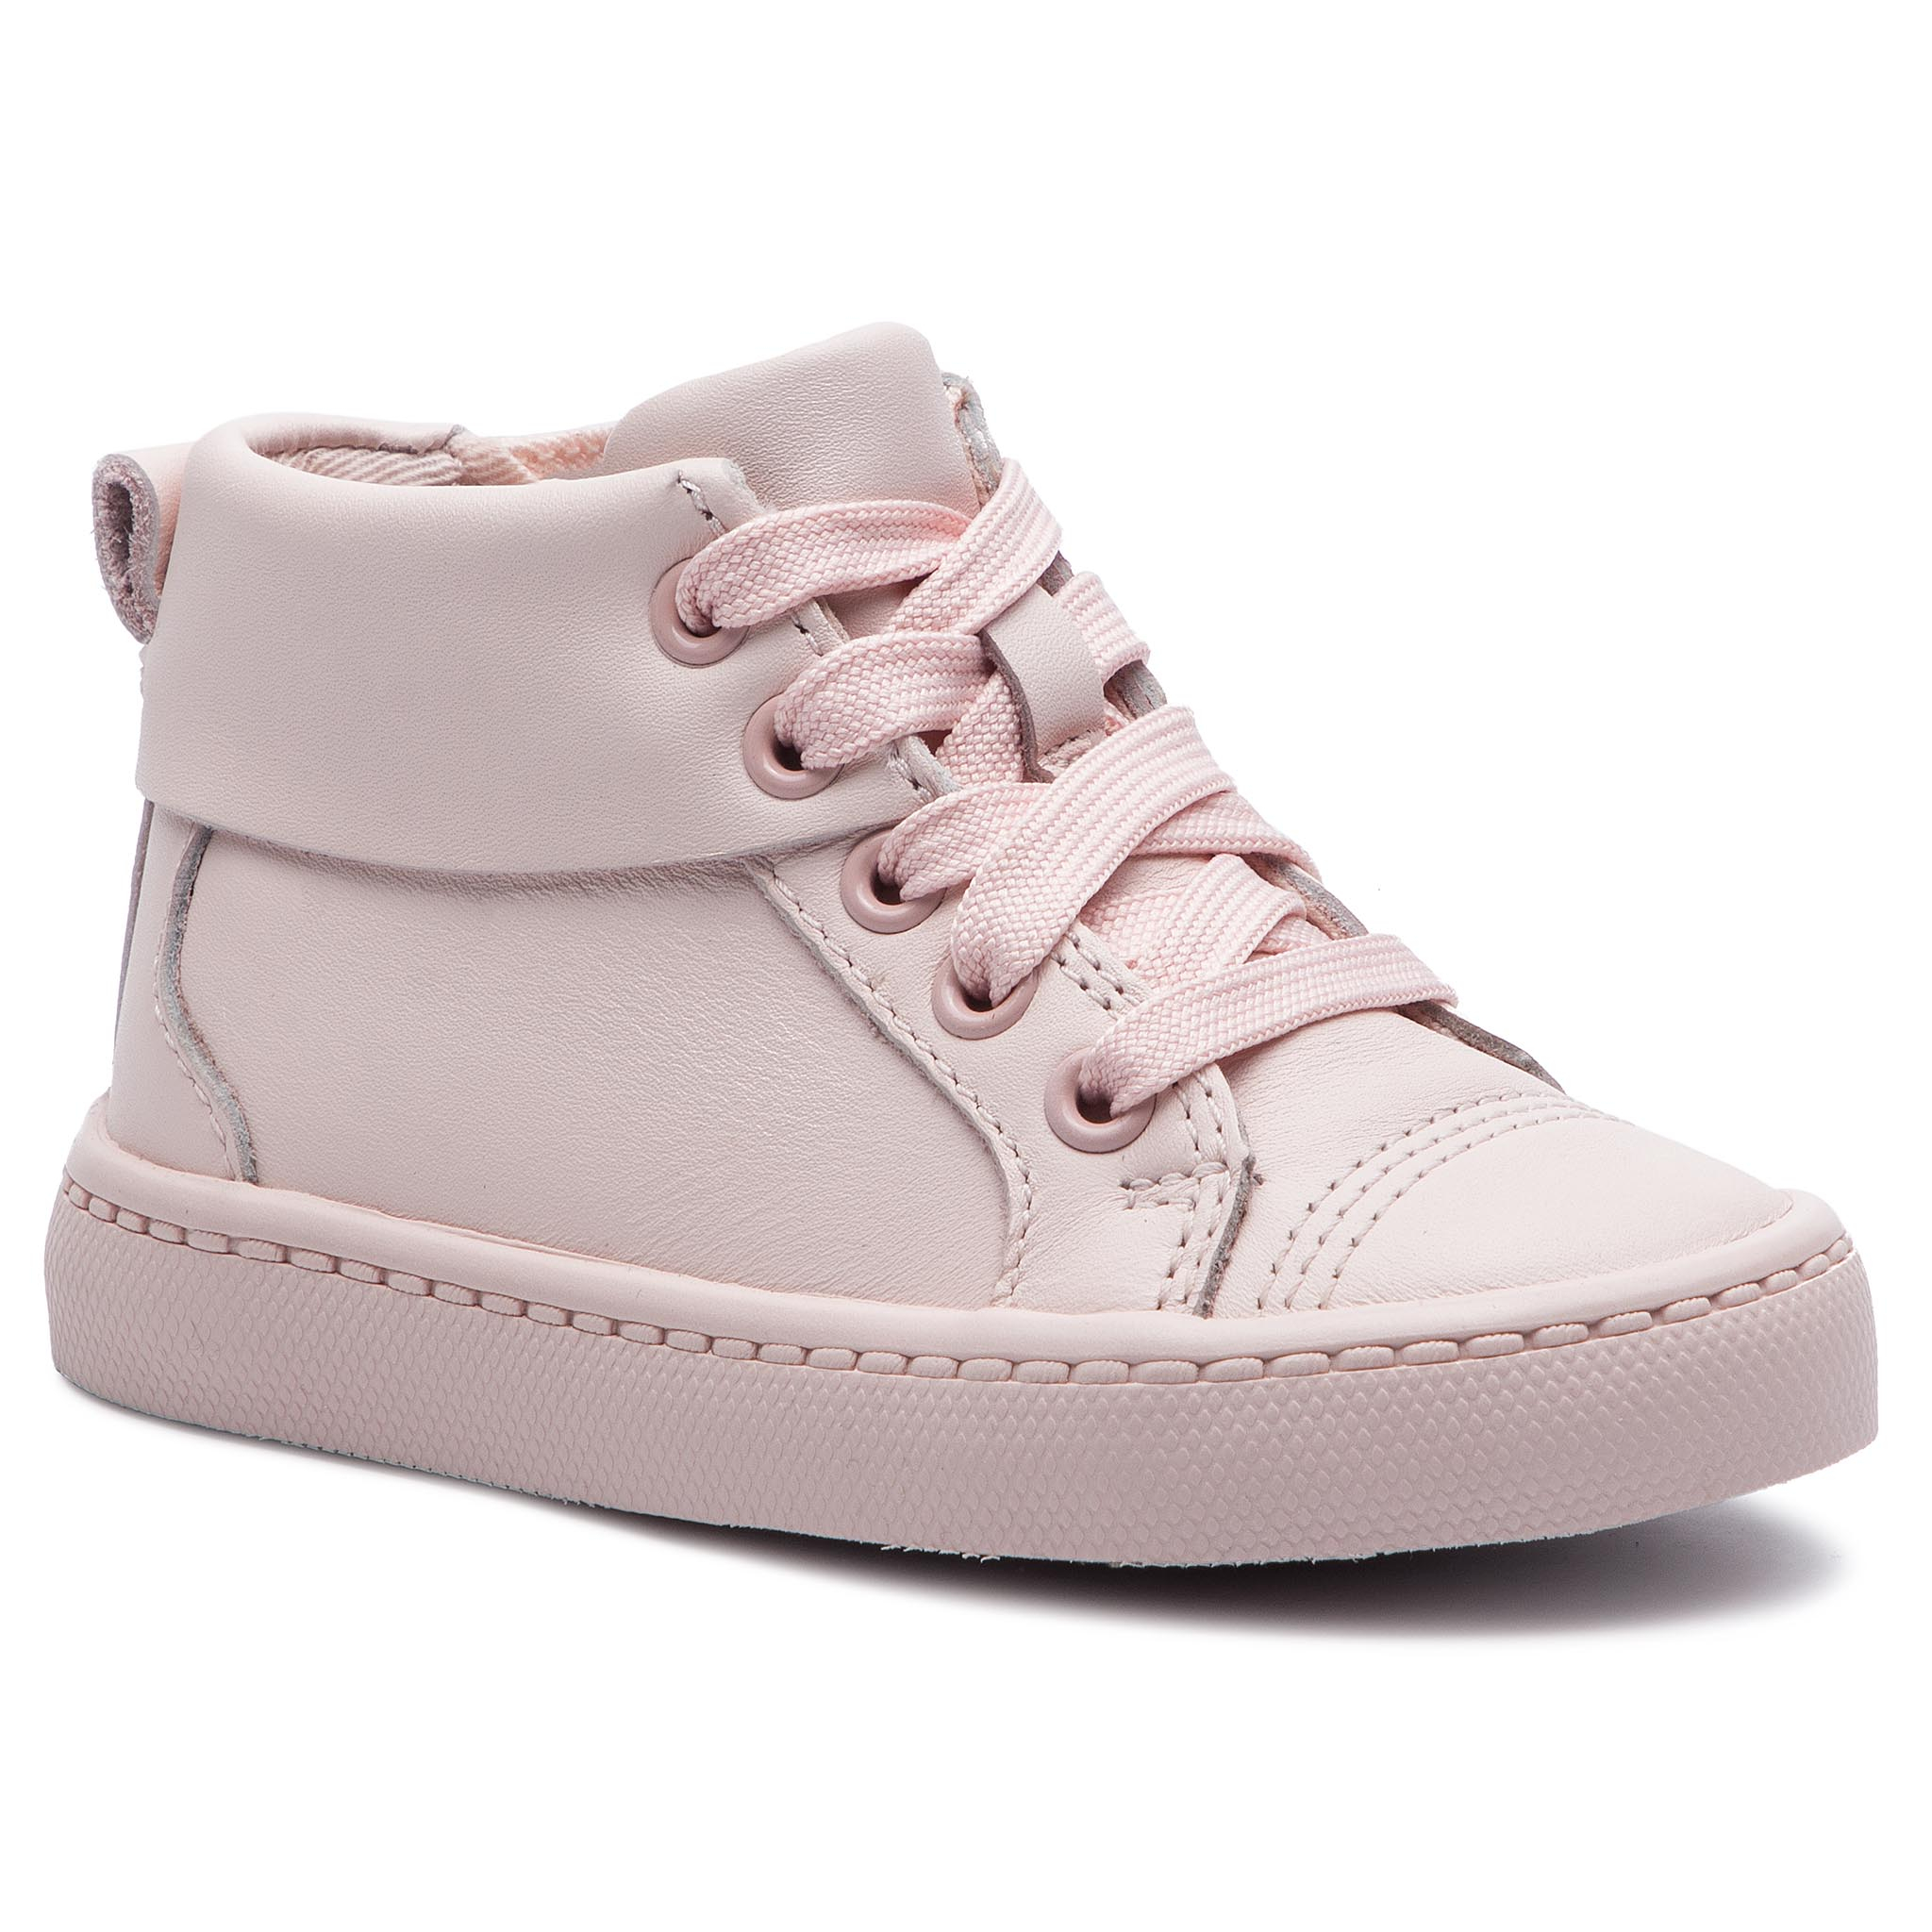 Sneakers CLARKS - City OasisHi T Pink